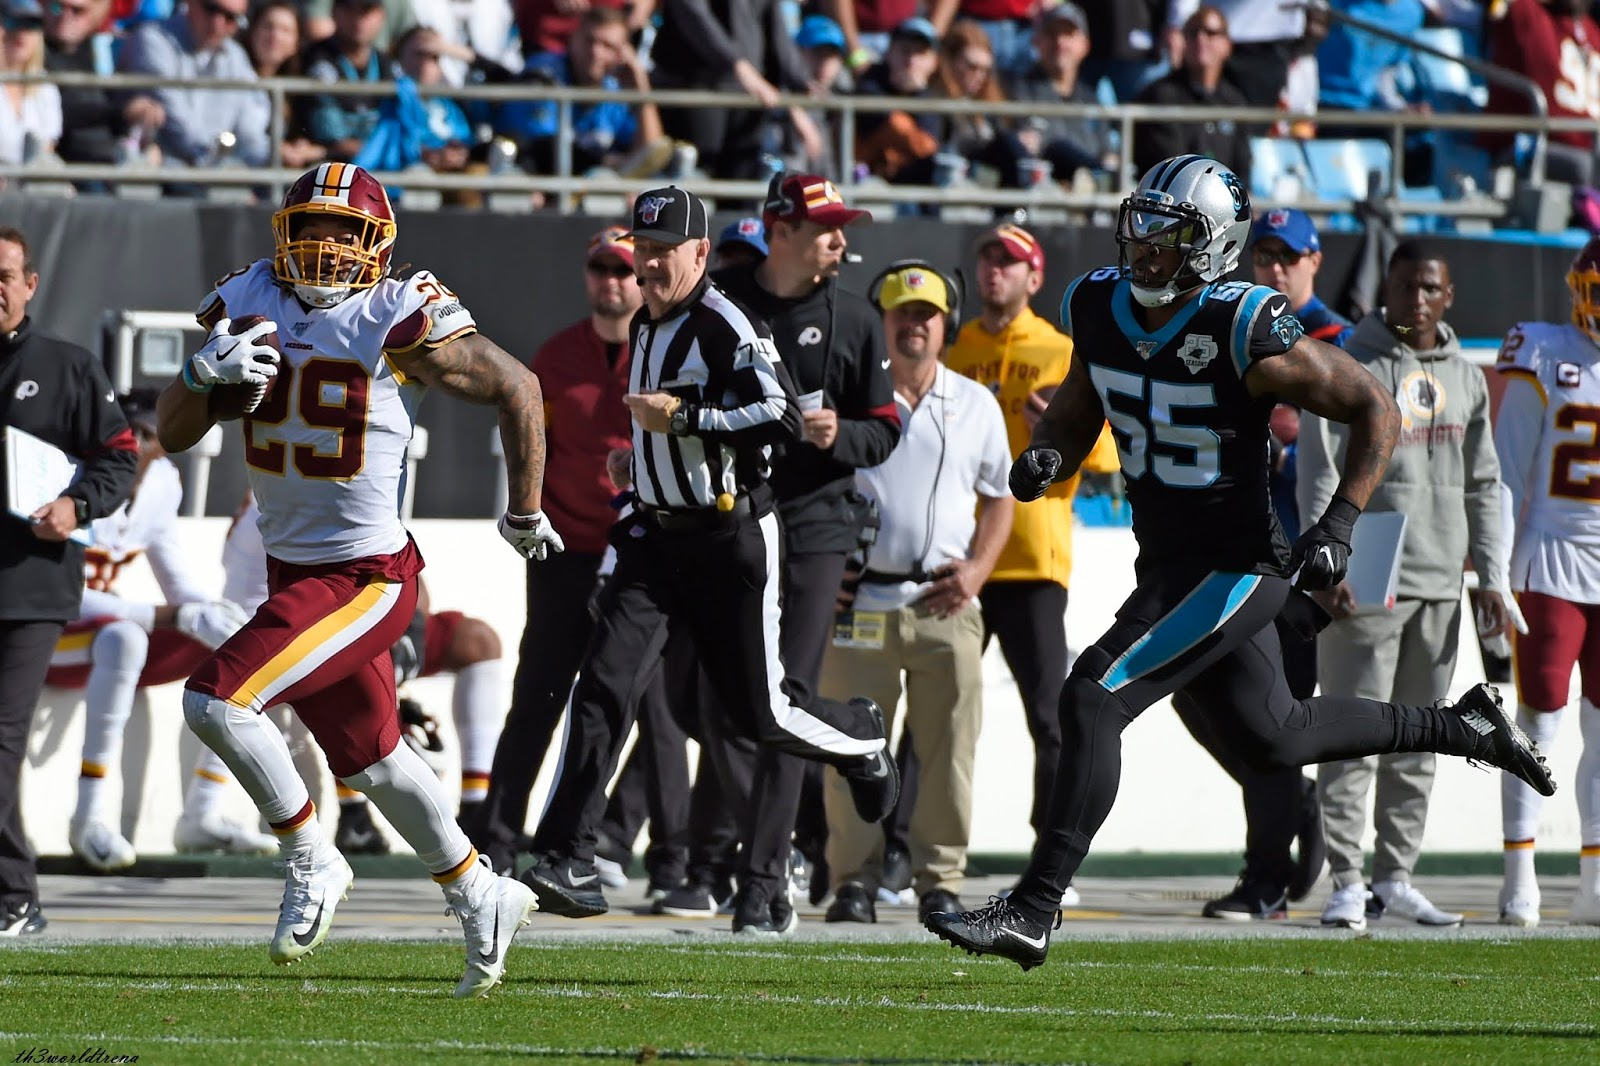 Redskins lead Panthers, 29-21, late within the fourth quarter